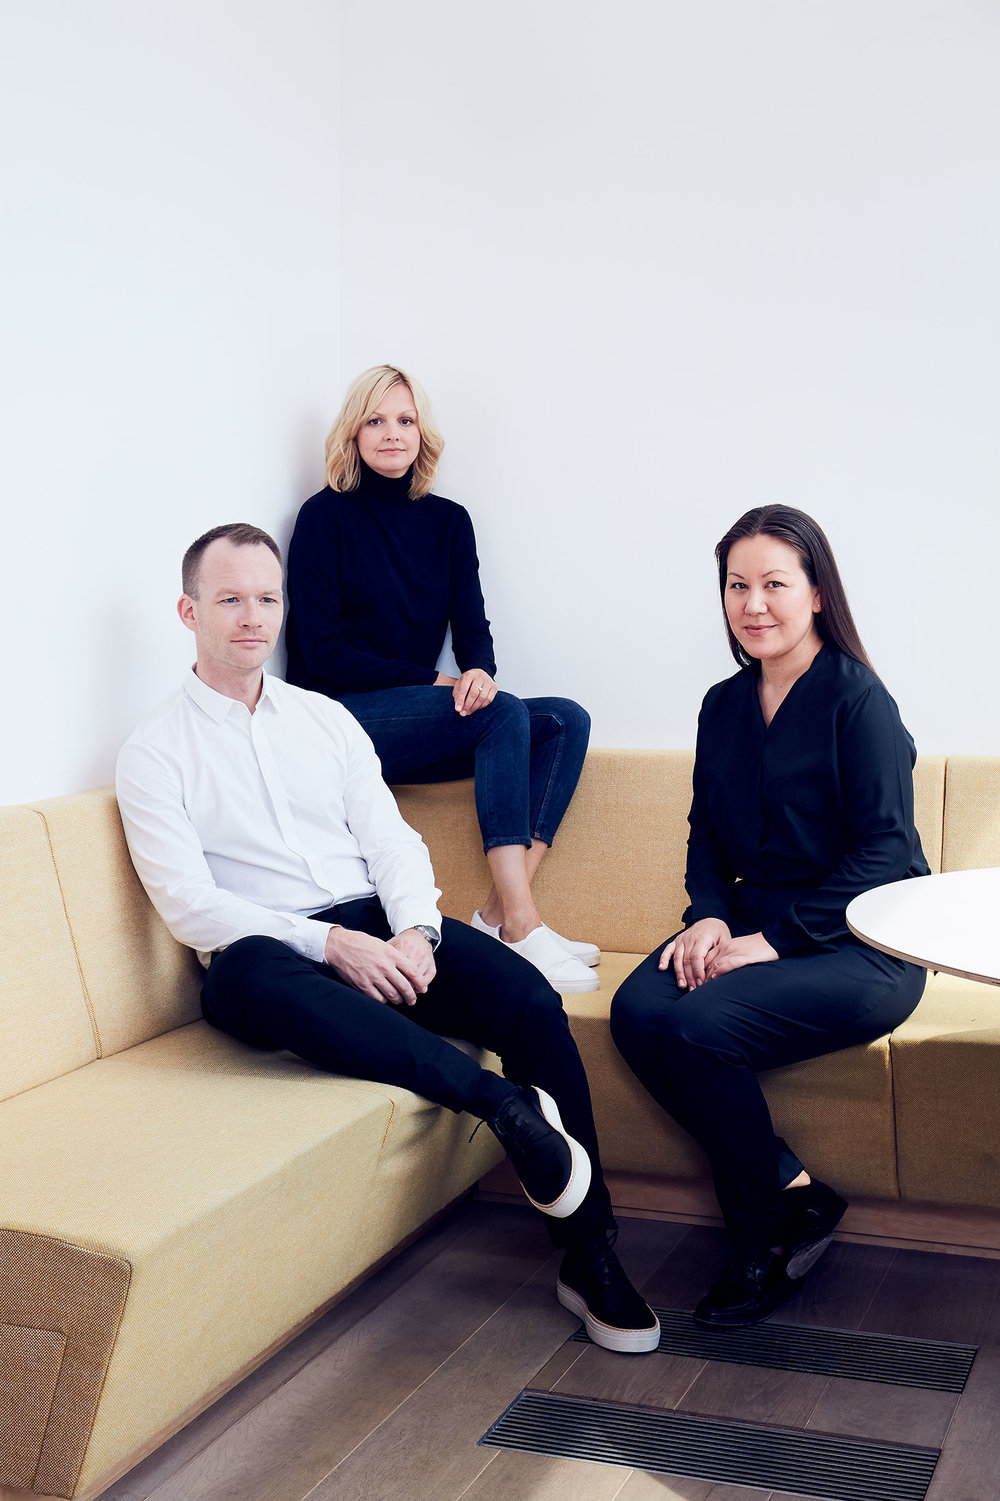 From left to right, head of menswear Martin Andersson, creative director Karin Gustafsson, and brand director Marie Honda.